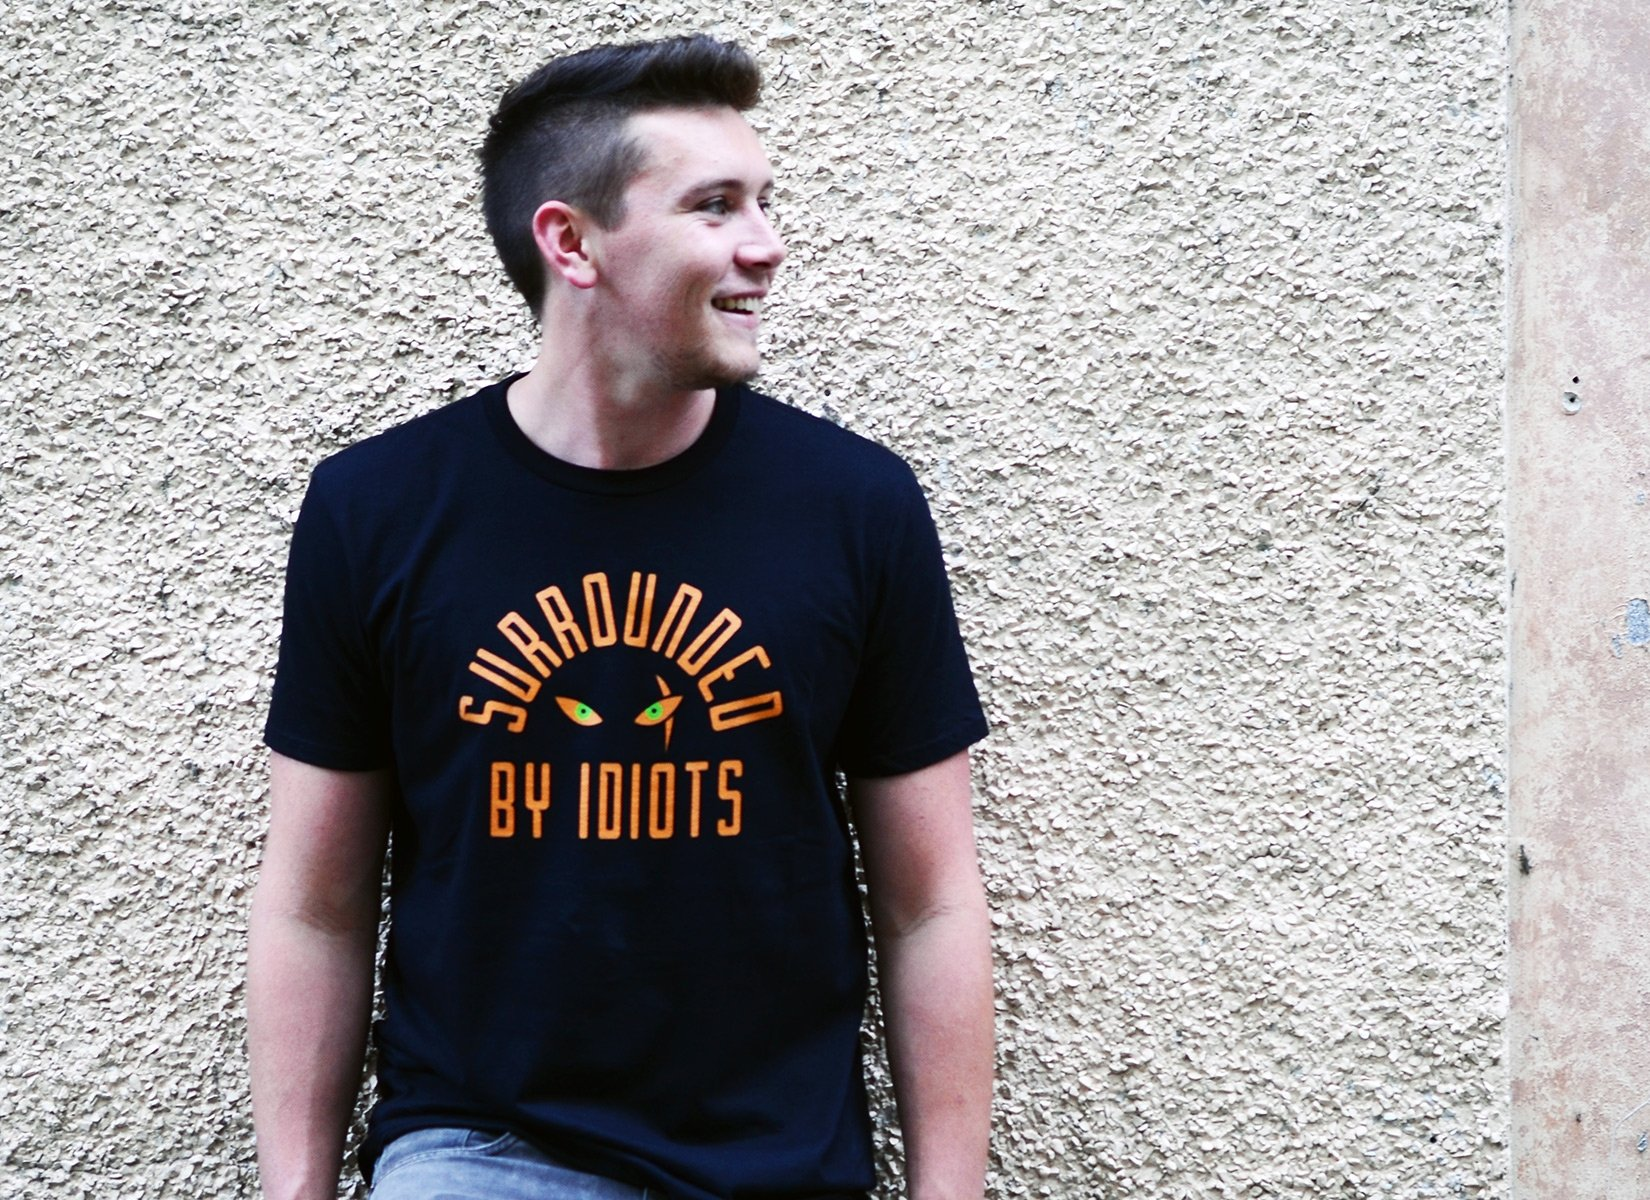 Surrounded By Idiots on Mens T-Shirt